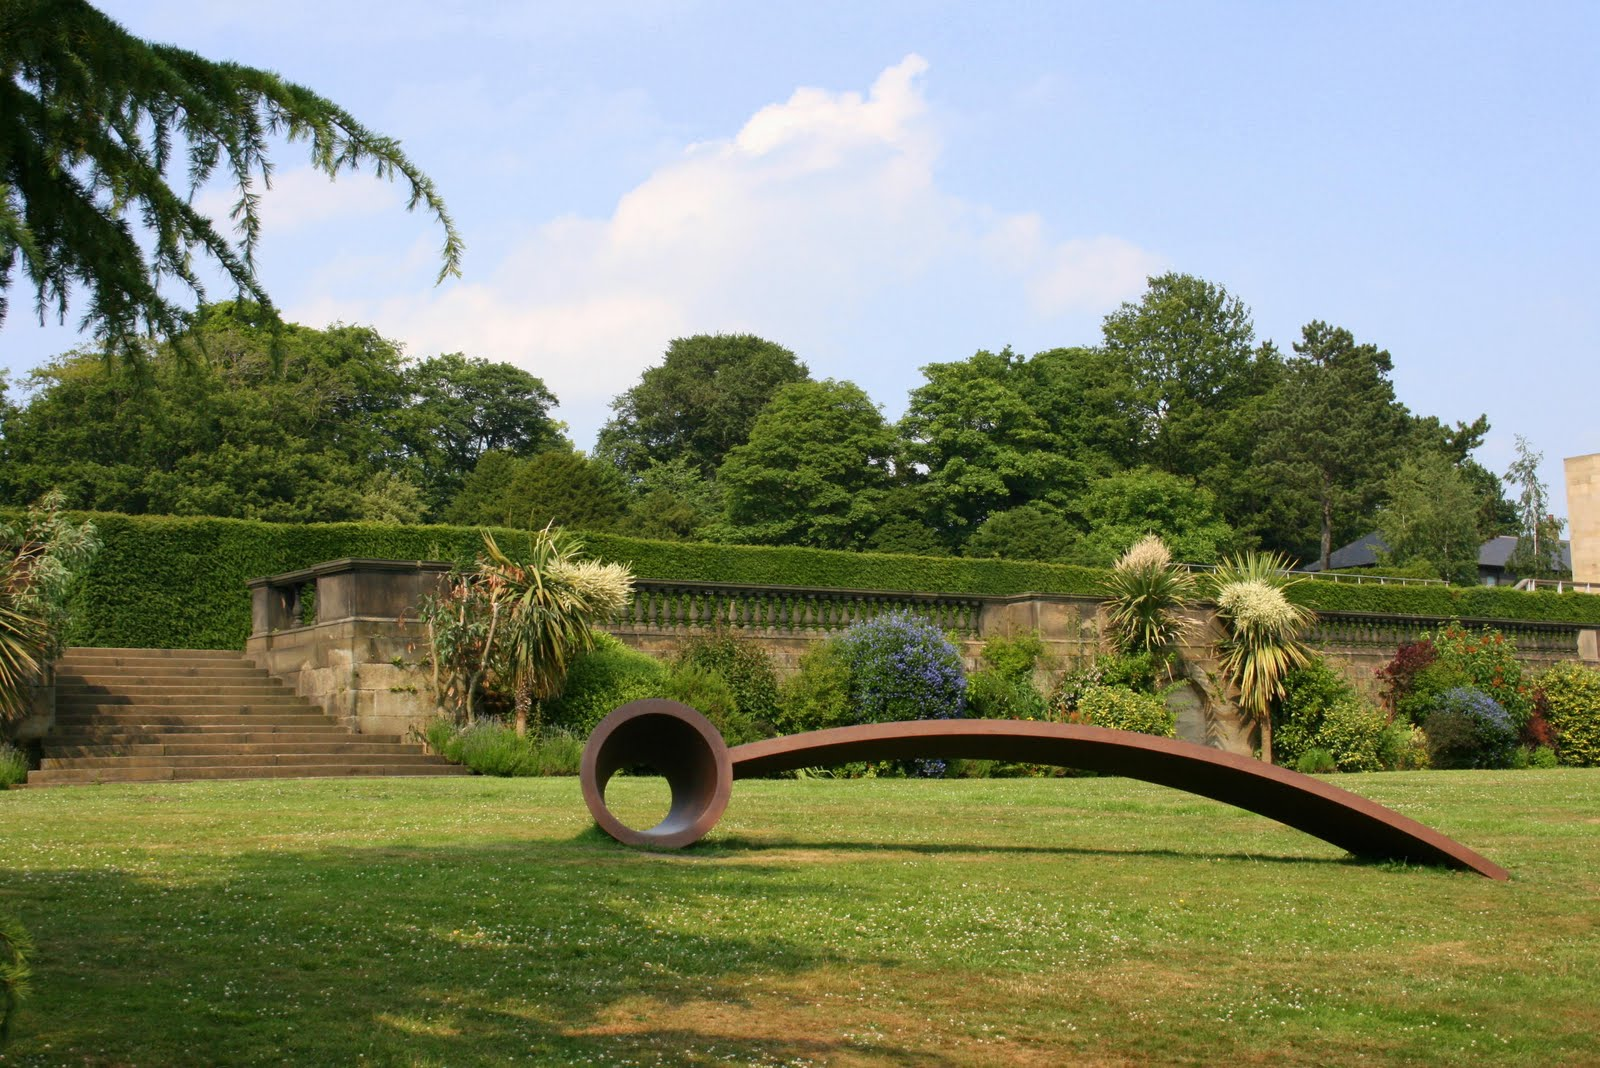 how to get to yorkshire sculpture park